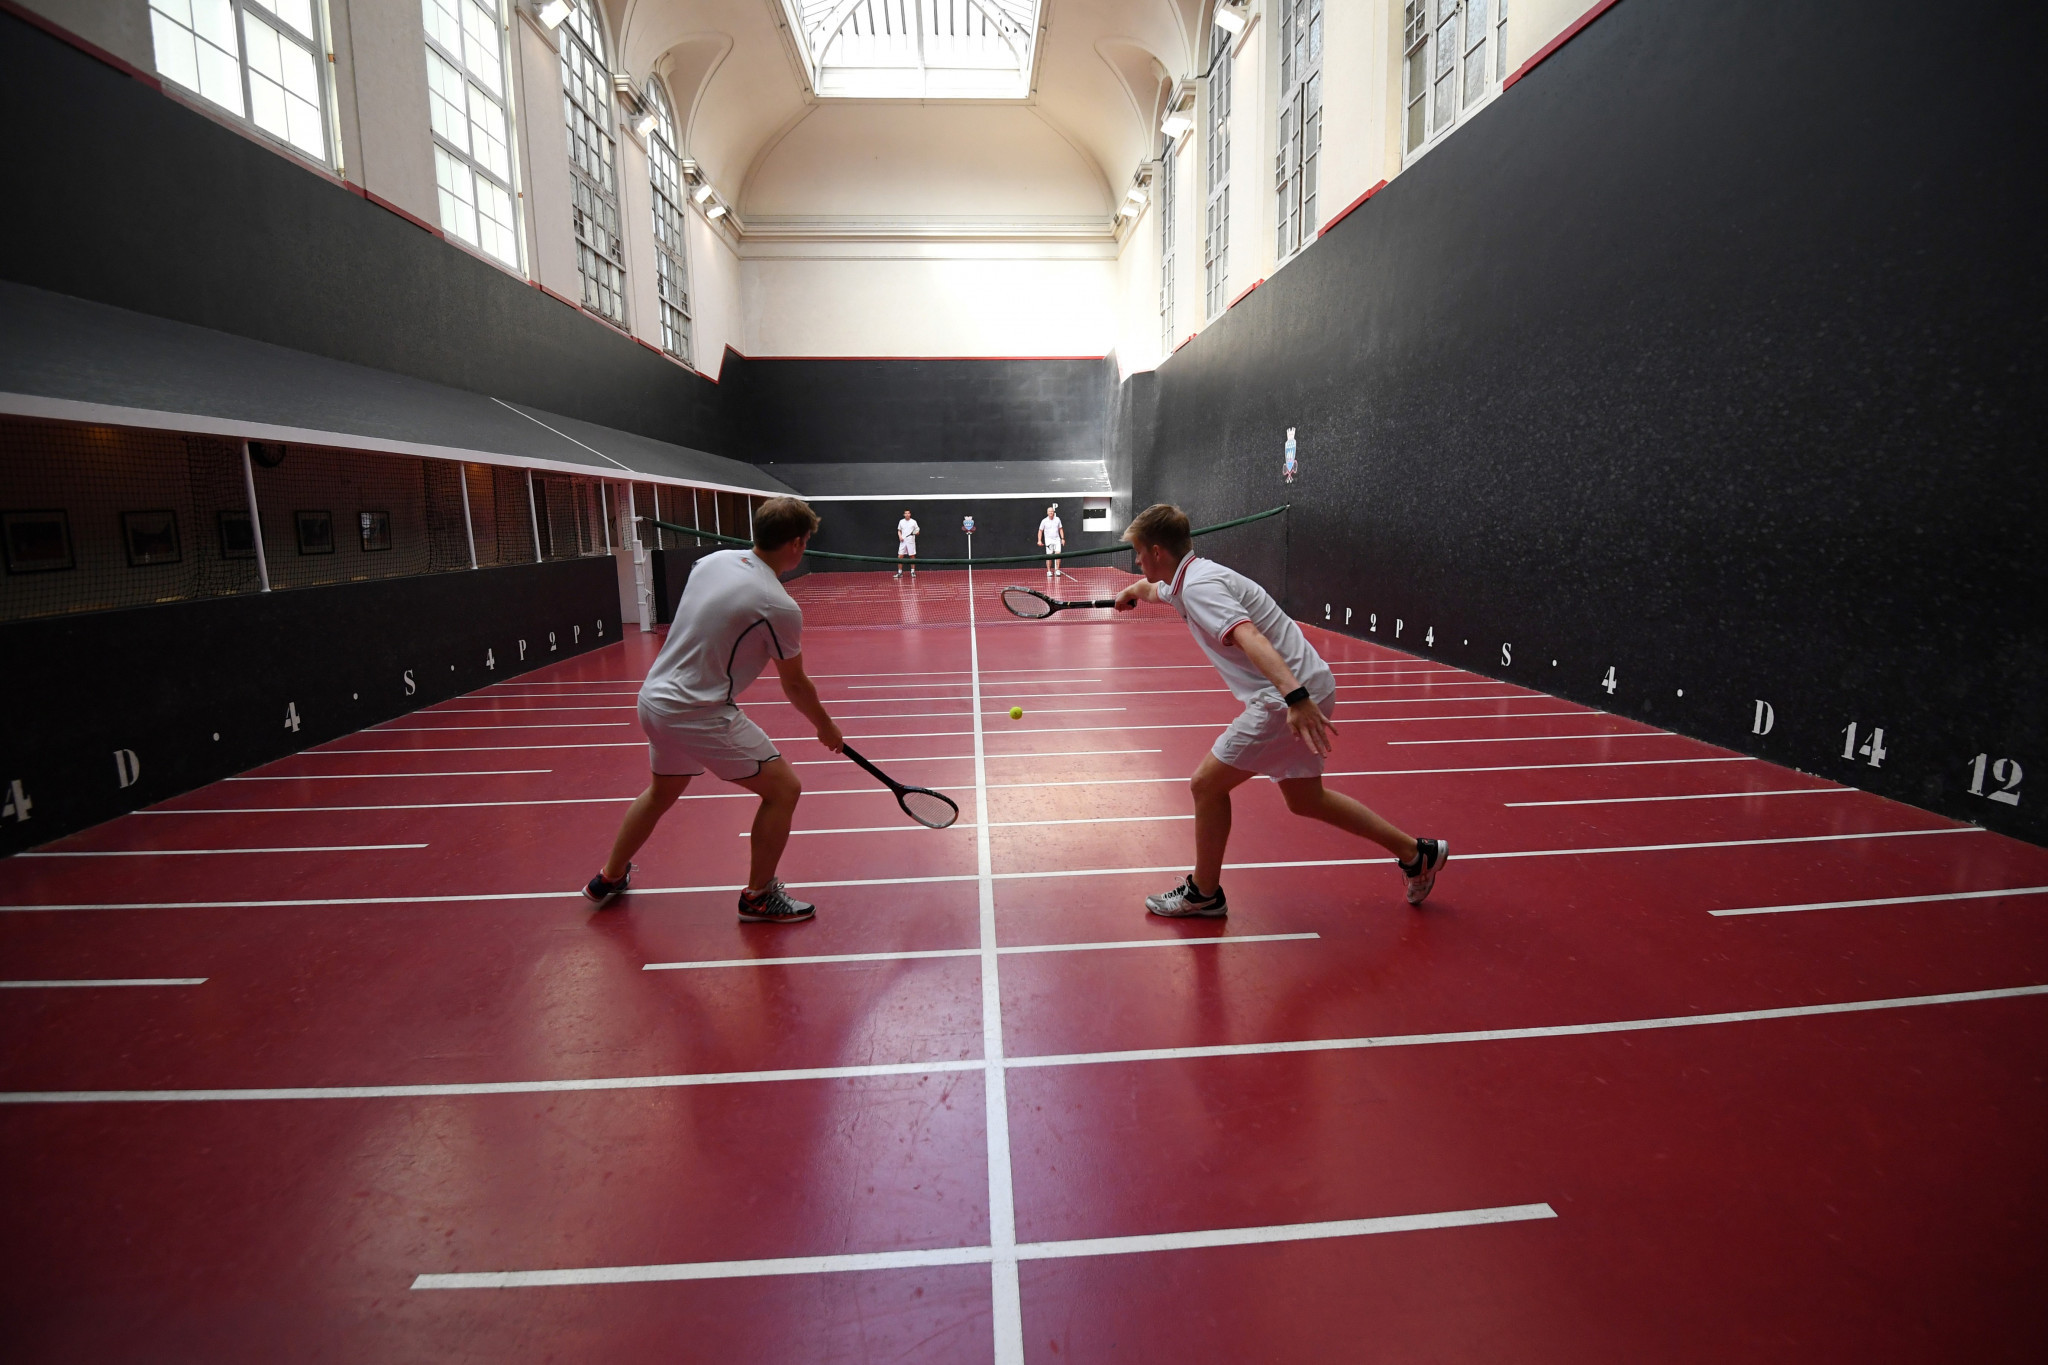 Real tennis at the Salle du Jeu de Paume in Paris - this game, which goes back to medieval times, is seen as the forebear of table tennis or ping pong as it was also called ©Getty Images